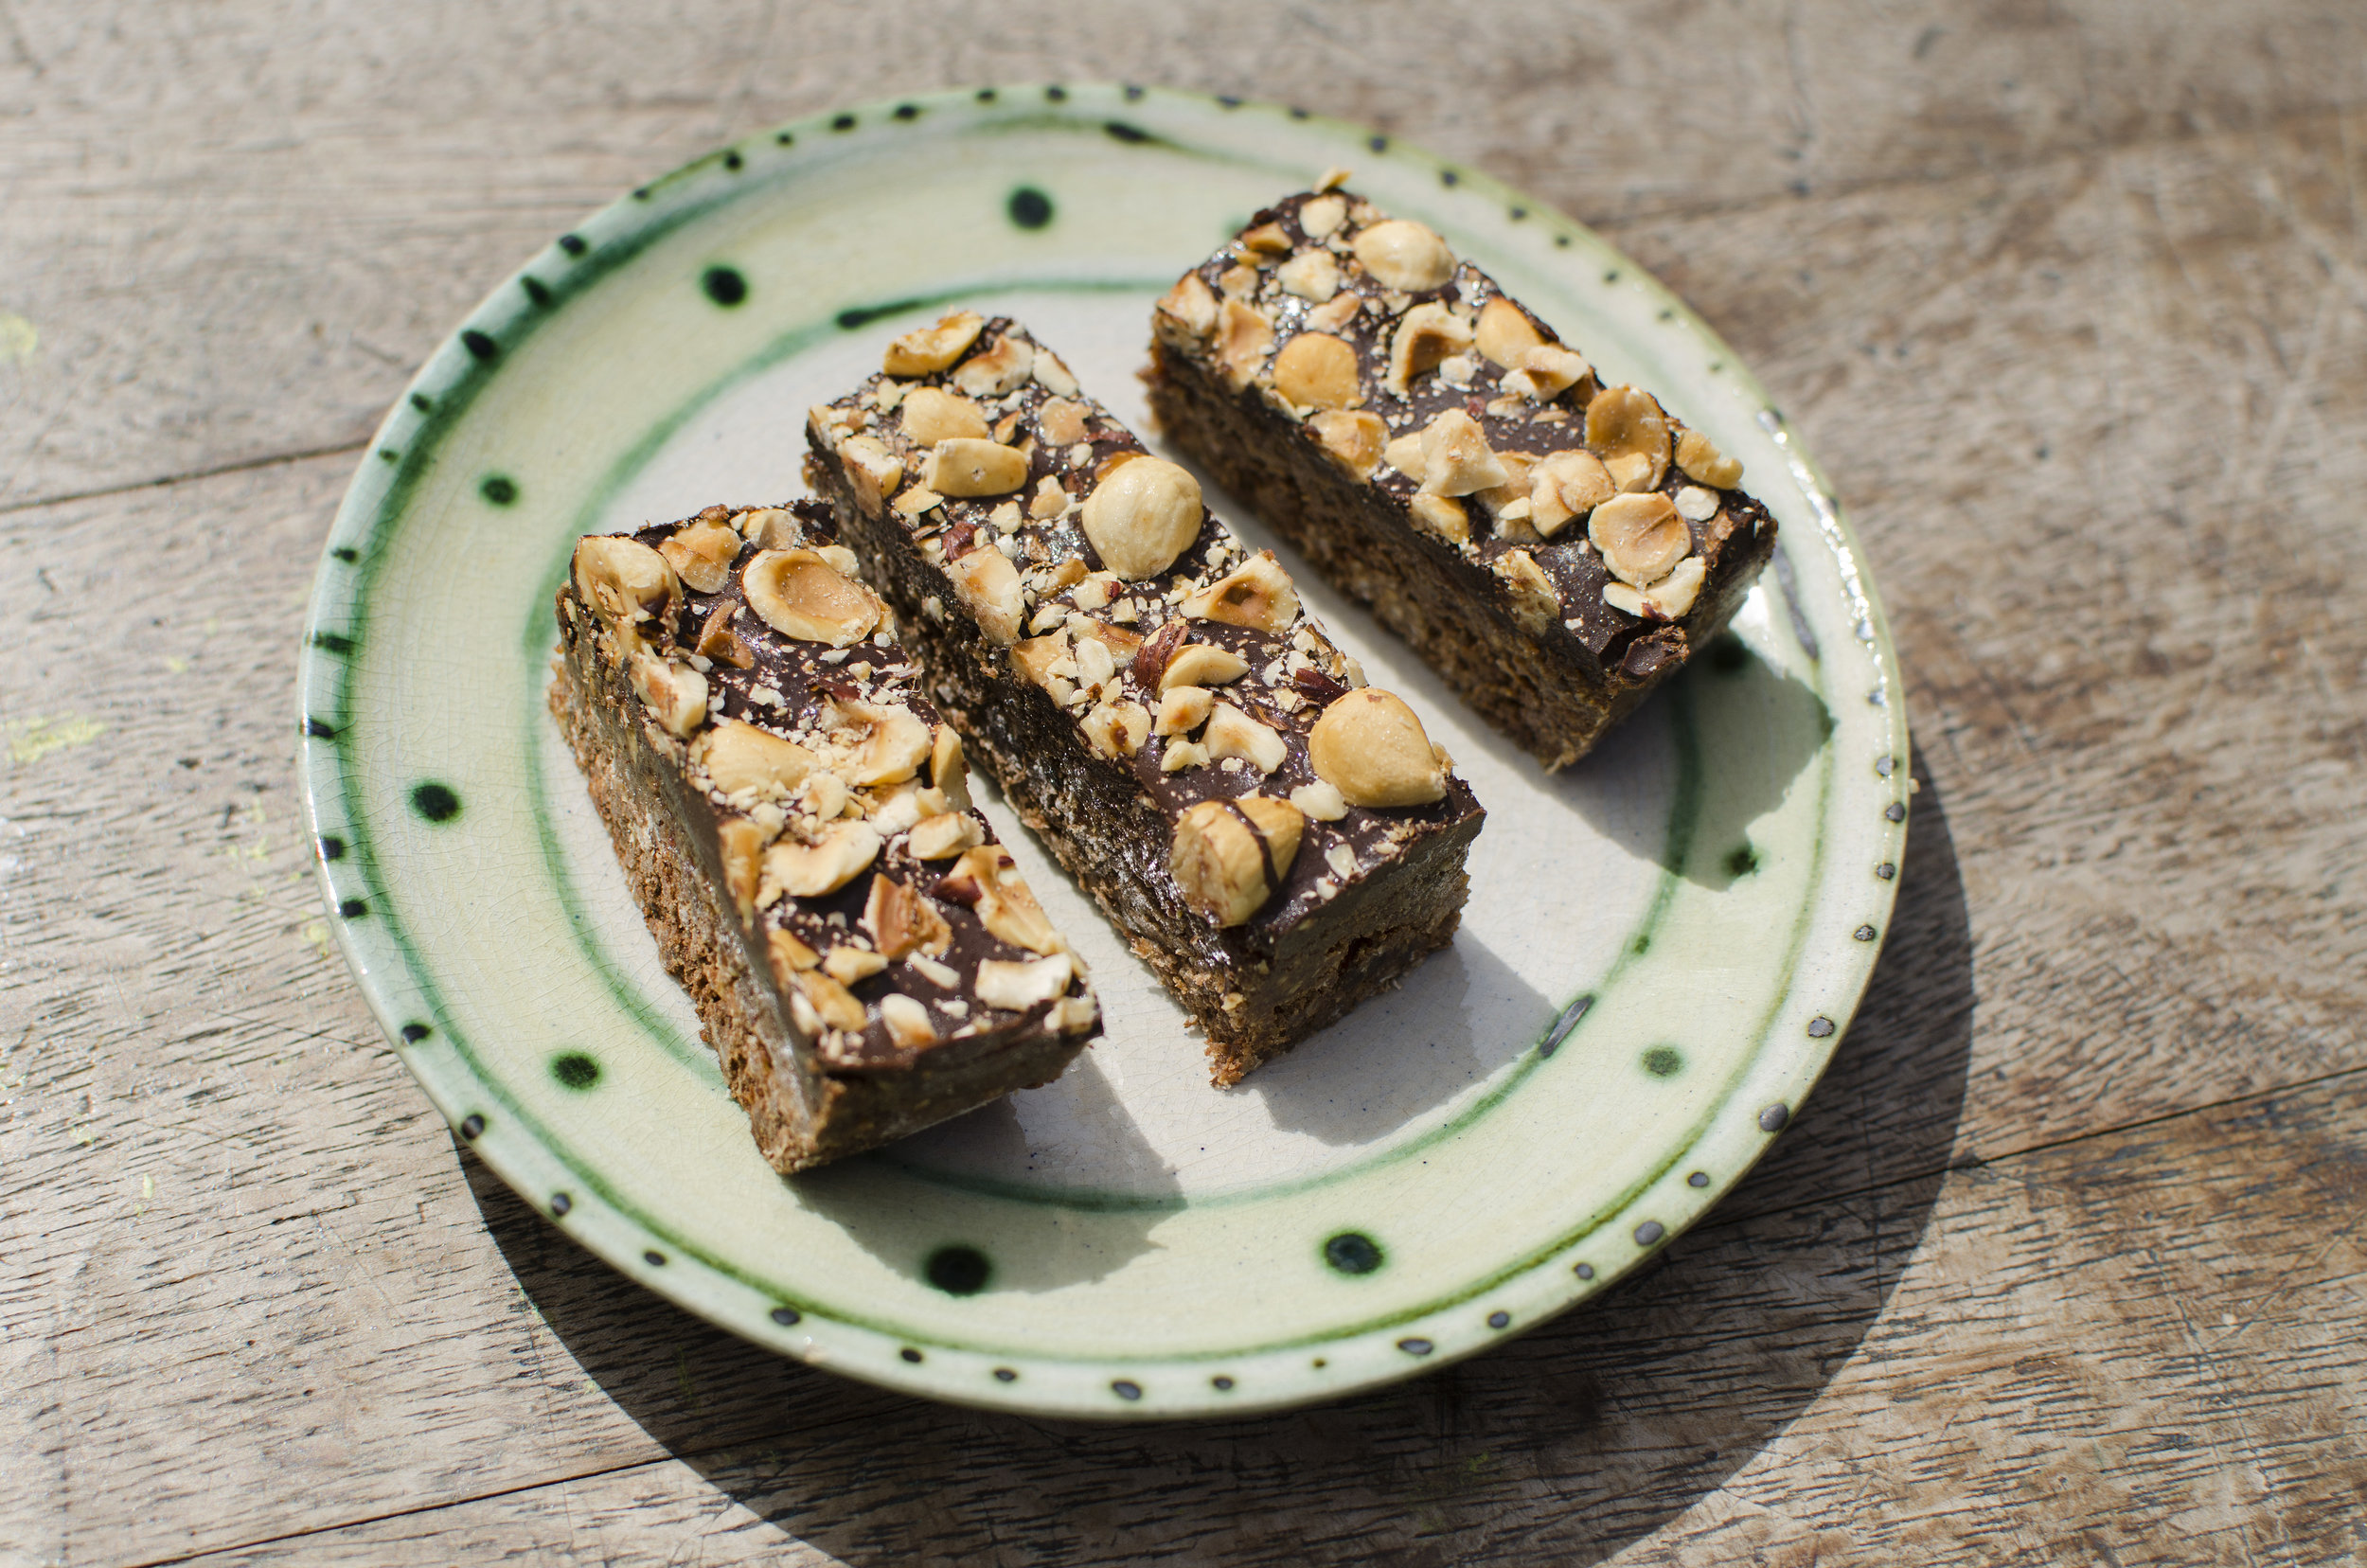 Vegan Ferrero Rocher Bars with Hazelnut Butter